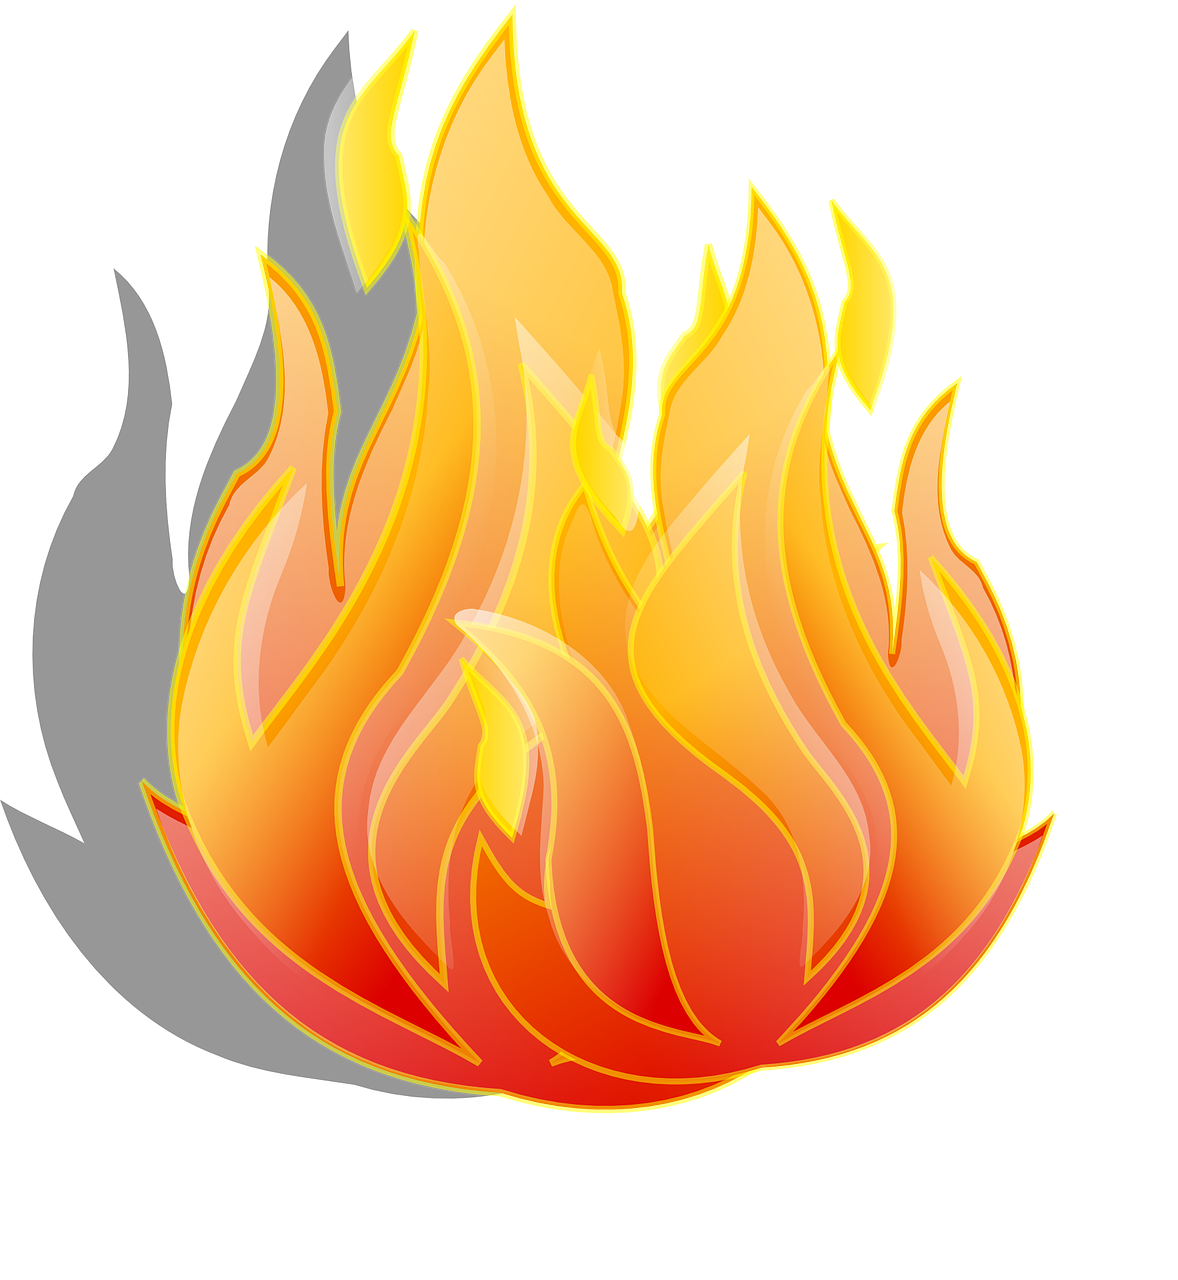 How to draw flames fire - free stencils 9